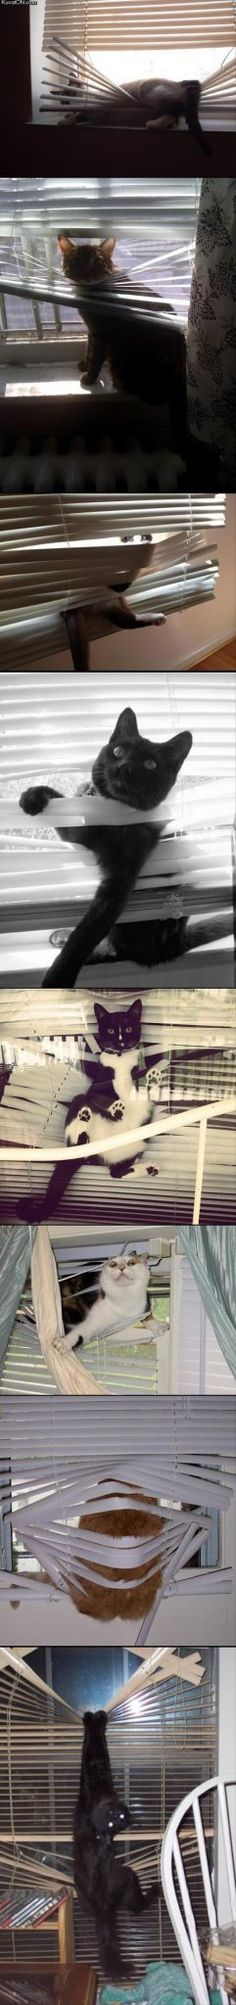 cats-love-blinds